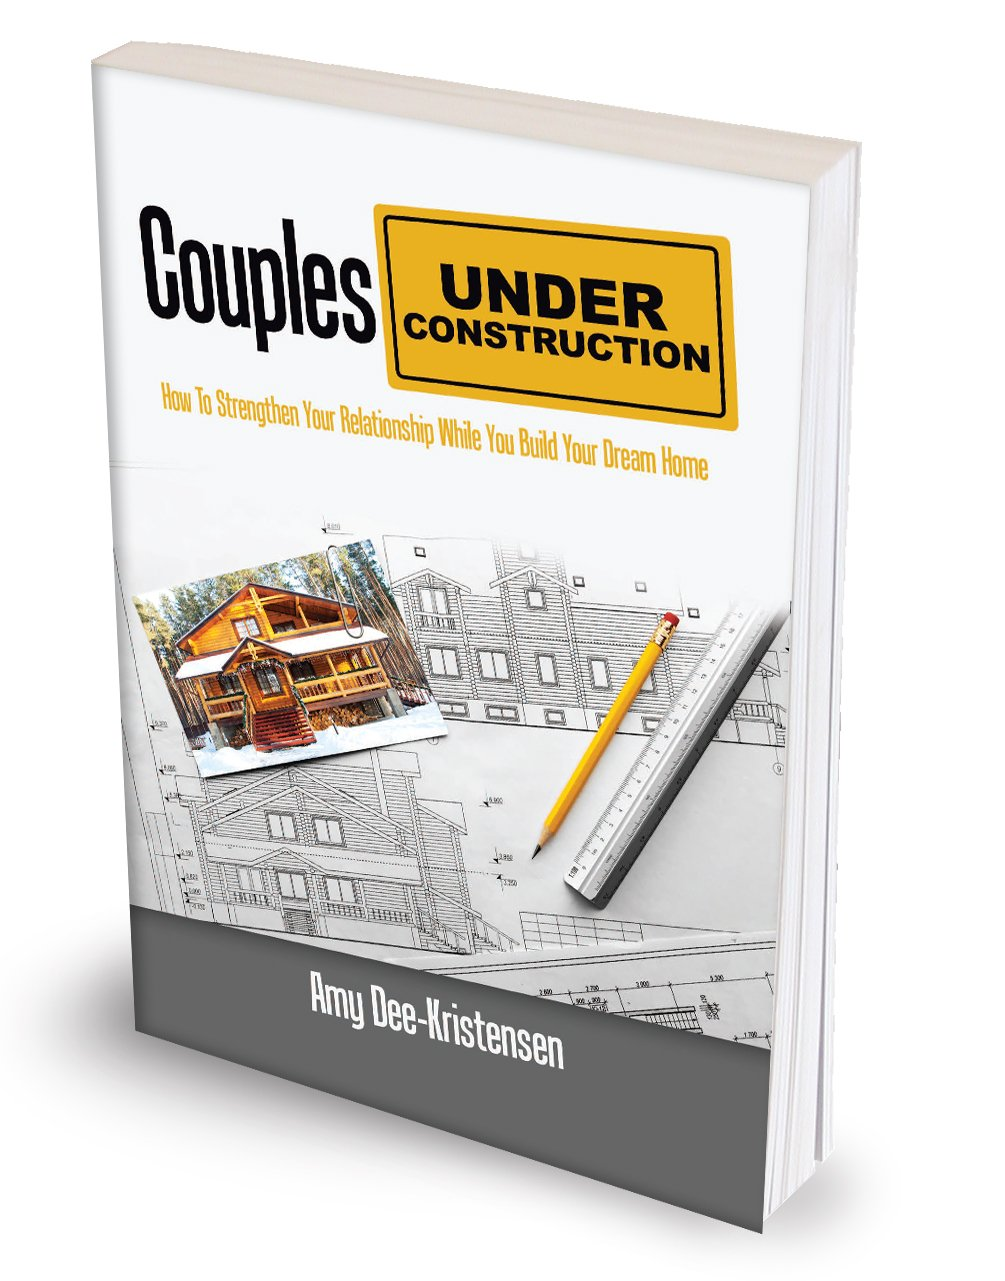 Couples Under Construction by Amy Dee Kristensen